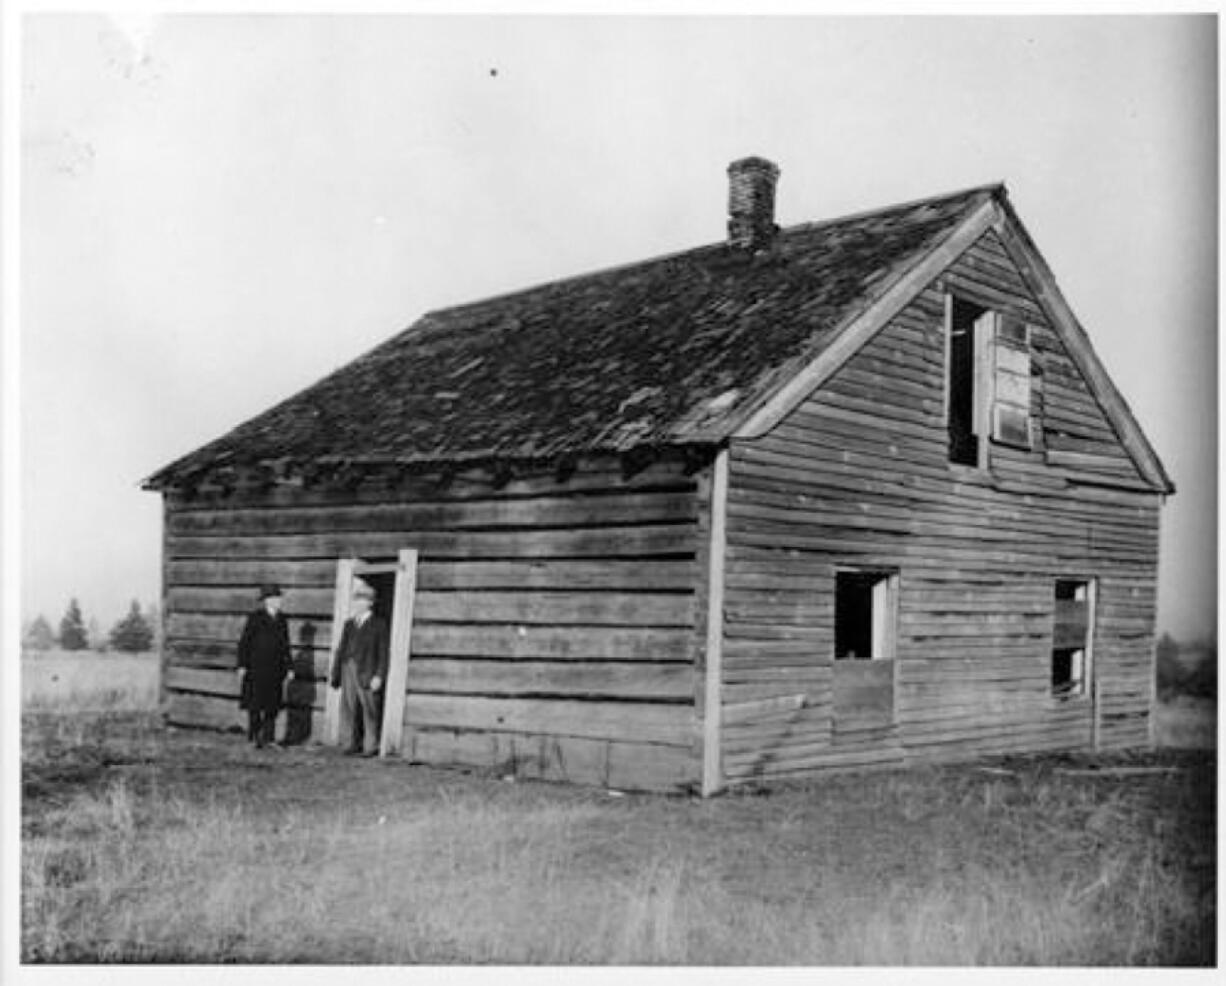 About 1920, two men in business-like dress stand near the doorway of the decaying Covington House at its original Orchards site on Covington Road. The Clark County Historical Society (then the Fort Vancouver Historical Society) and the Vancouver Women's Club planned on moving the cabin log by log in 1926 and rebuilt it about 1928 at today's location on Main Street near the Kiggins Bowl.